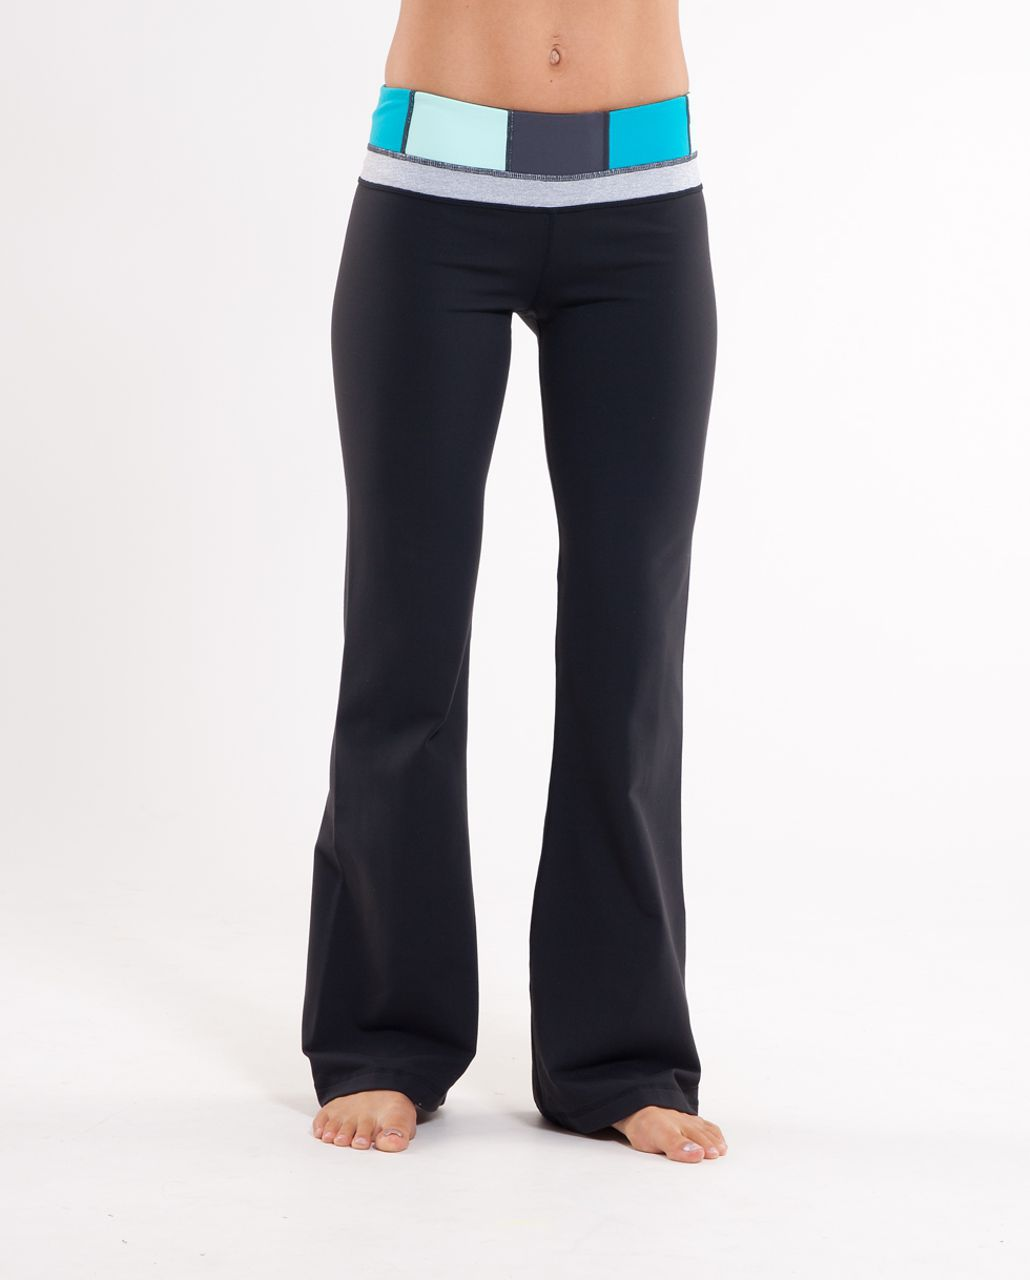 Lululemon Groove Pant (Regular) - Black /  Quilt Summer 2